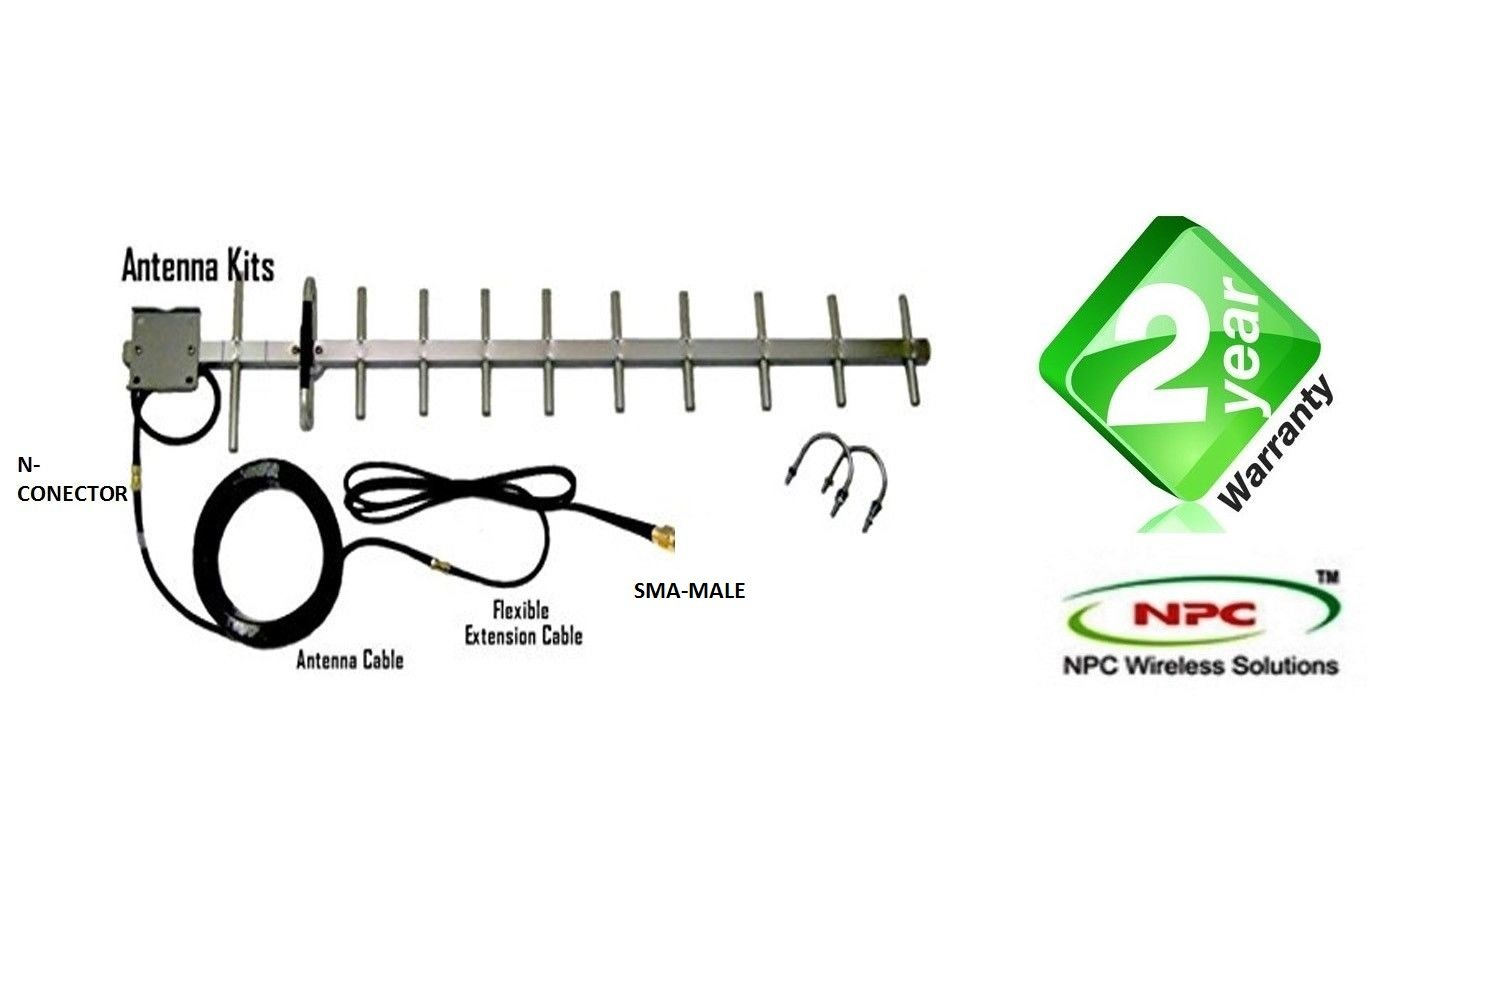 Npc Wireless 3G/4G High Gain Yagi Antenna With 10 Metres Cable SMA- Male For Routers With Sma Female Port- 16 Dbi Gain